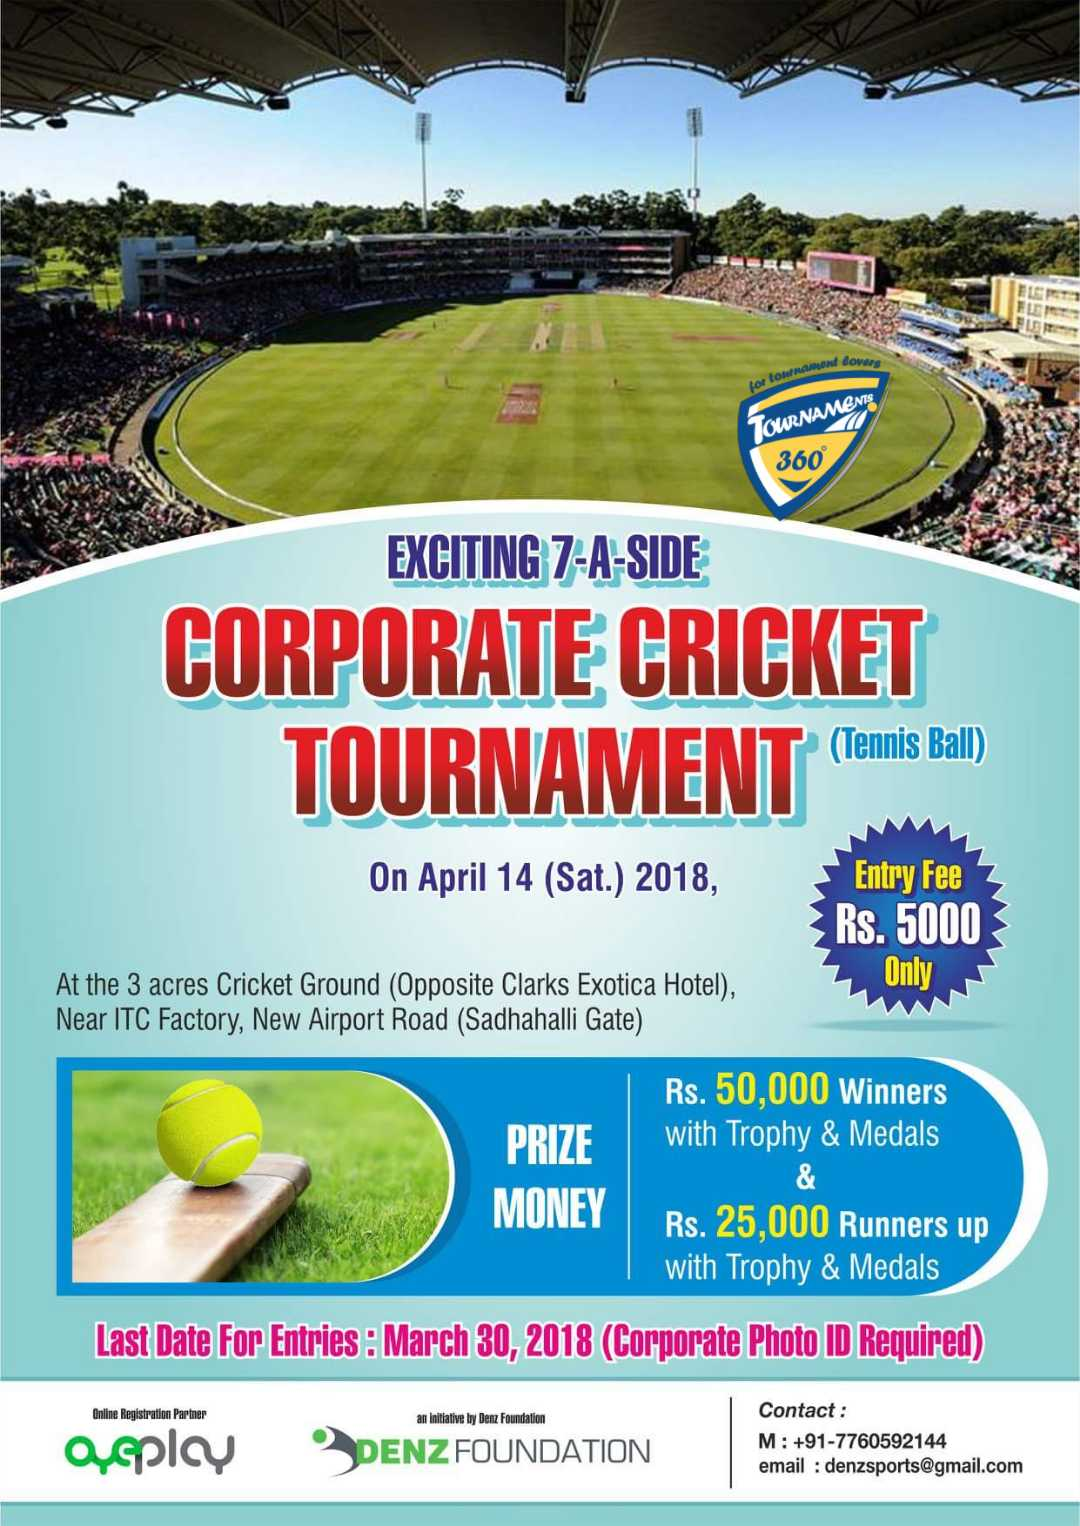 Invitation For Corporate Cricket Tournament: Corporatetournament List In Bangalore